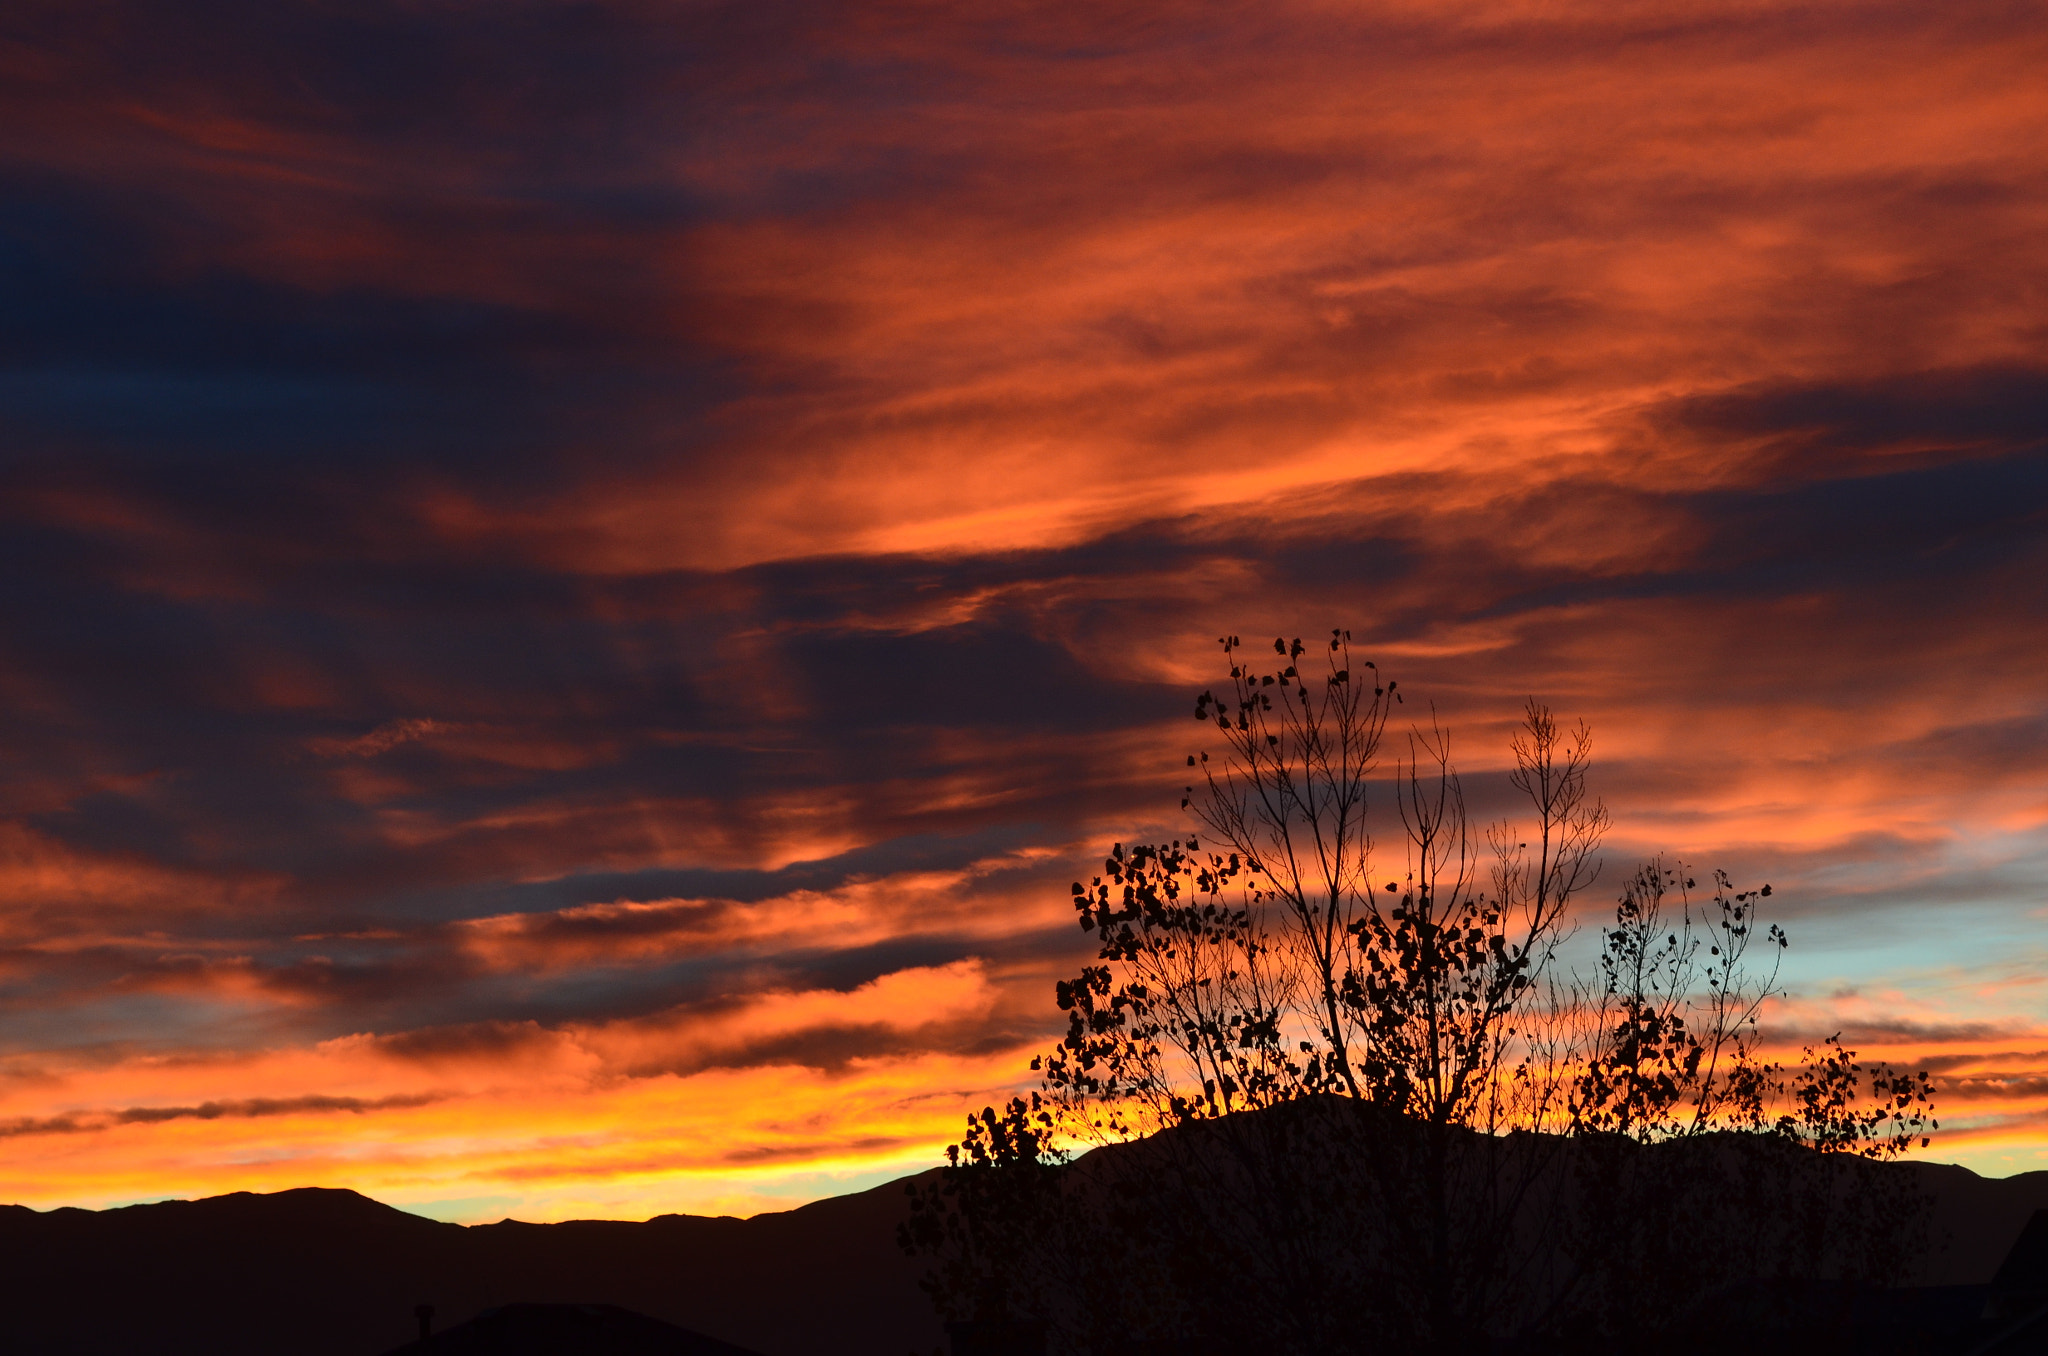 Photograph Fall Sunset by Jeff Heredia on 500px